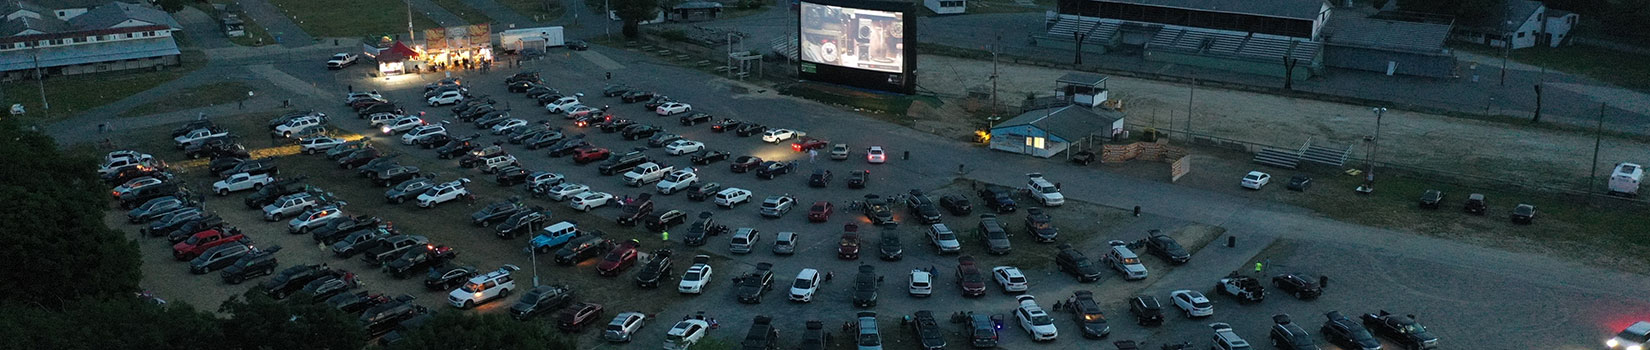 Marshfield Drive-In